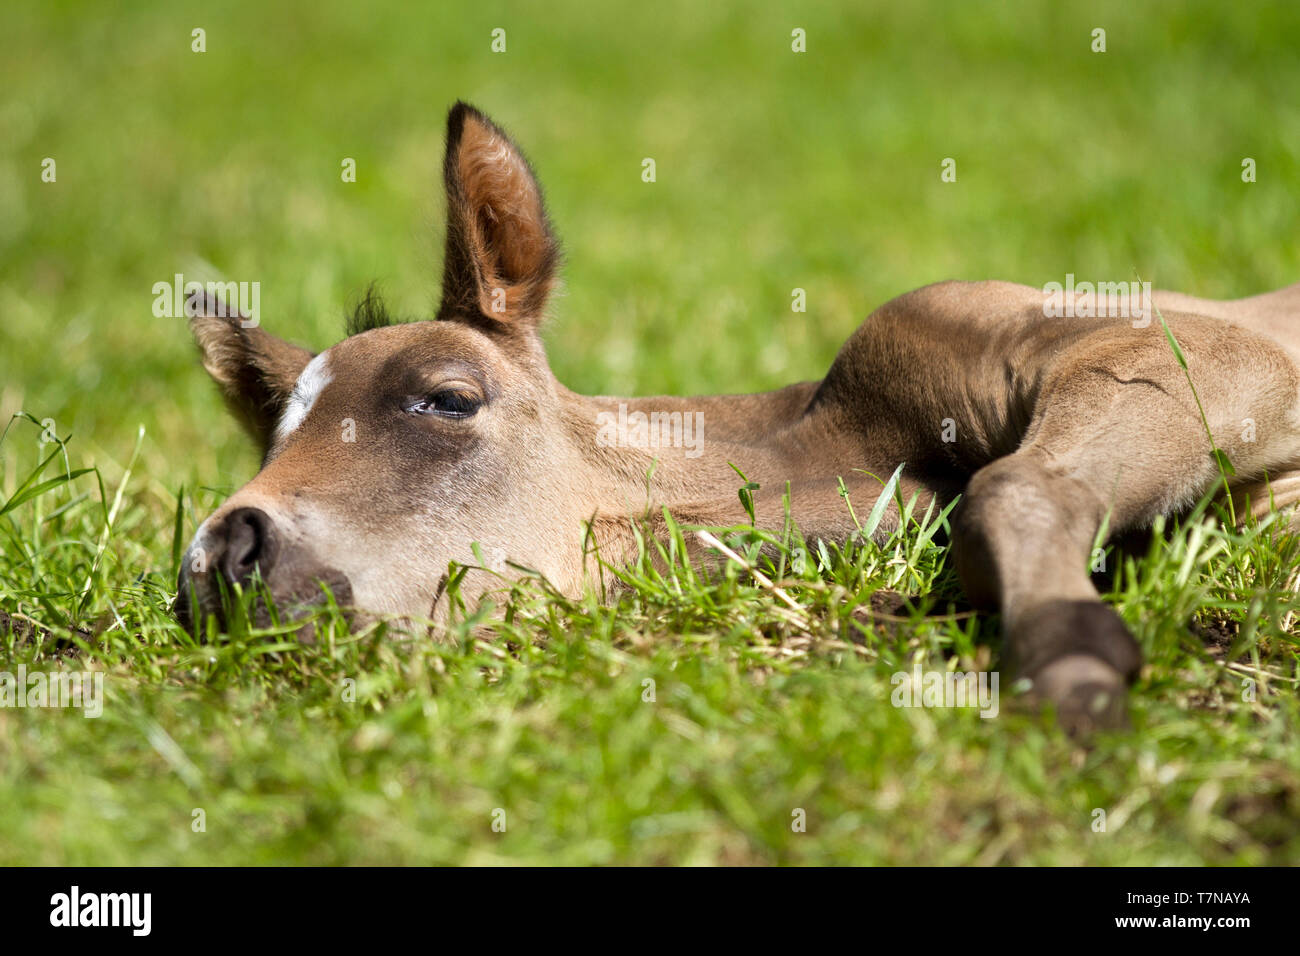 Buckskin NRPS foal lying down and enjoying the sun in the meadow. Noord-Holland/Netherlands - Stock Image